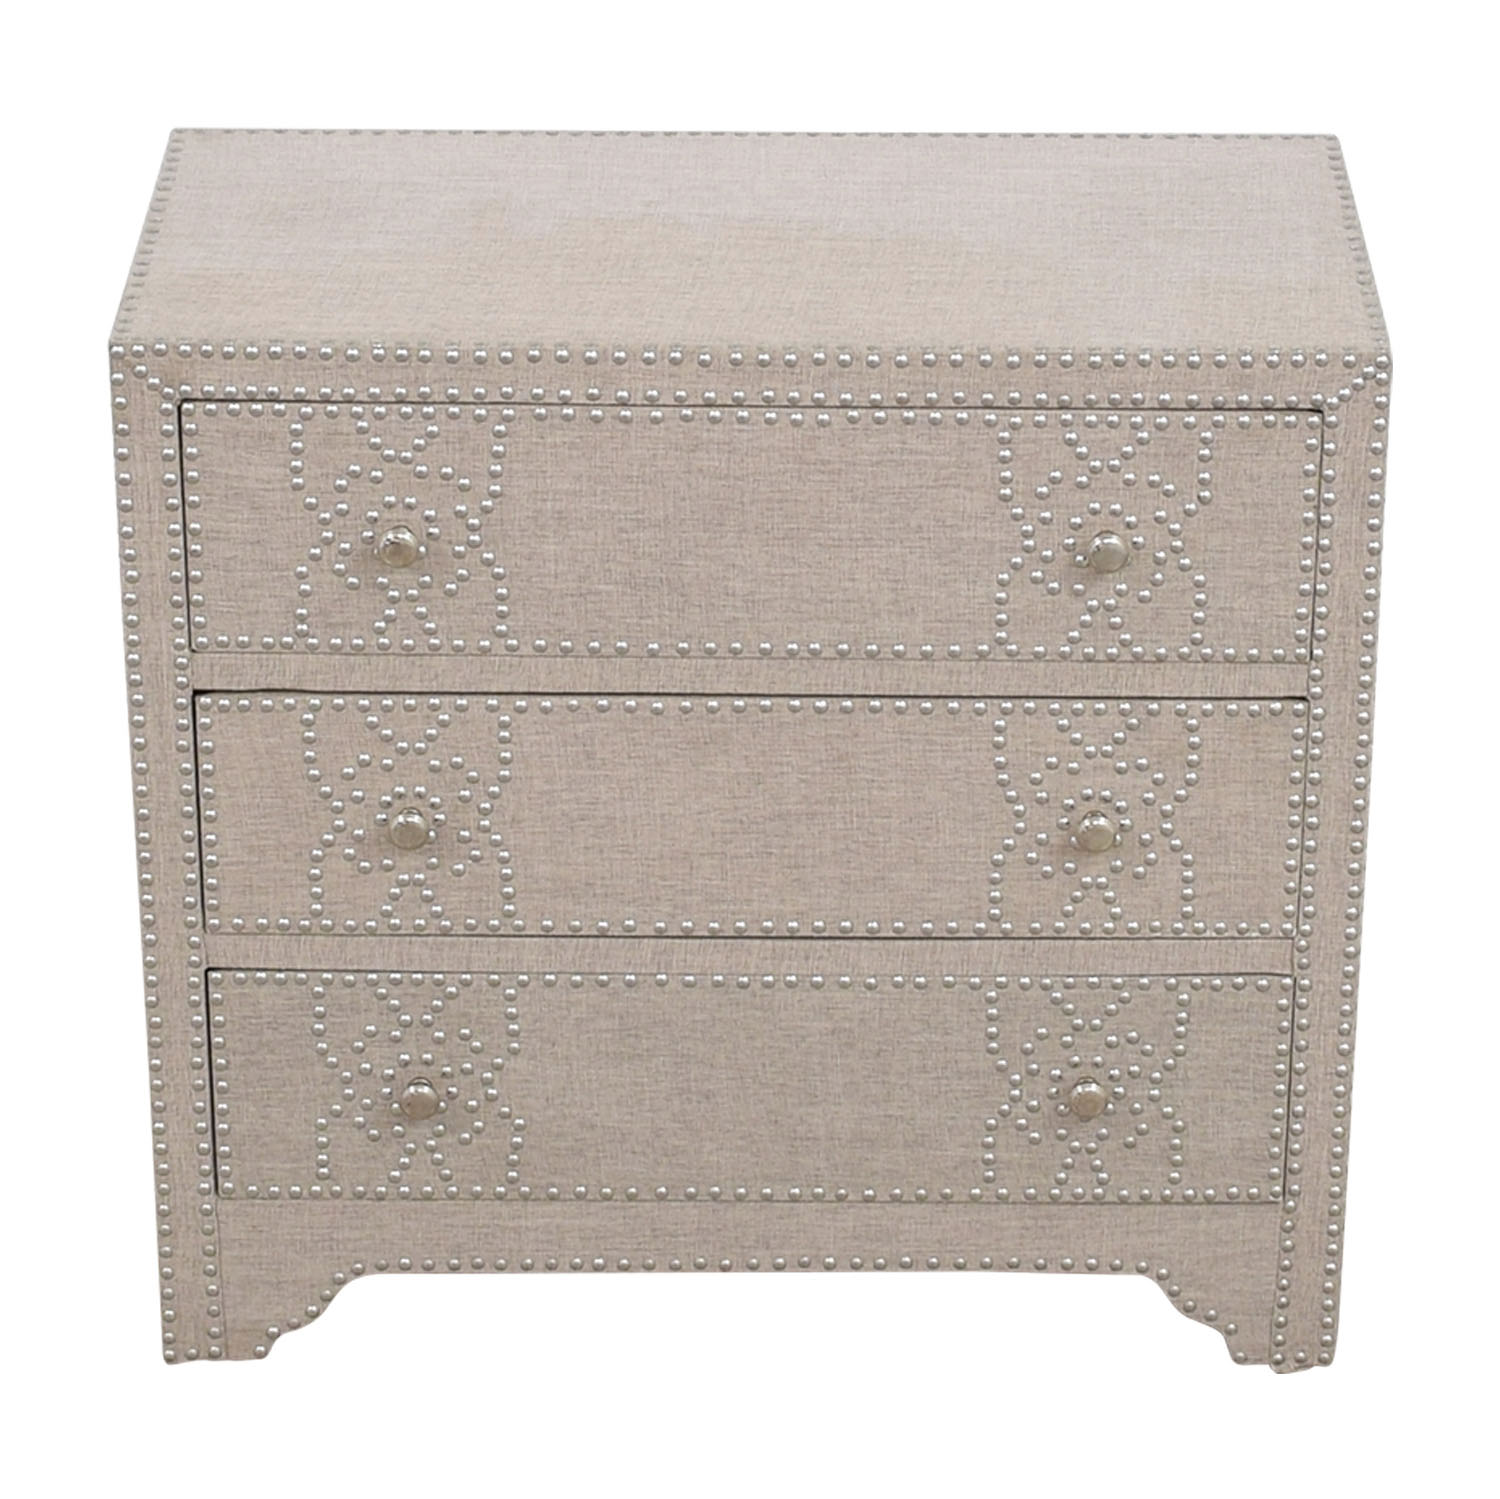 Pier 1 Import Grey Fabric Lexford Chest with Nailheads Pier 1 Imports